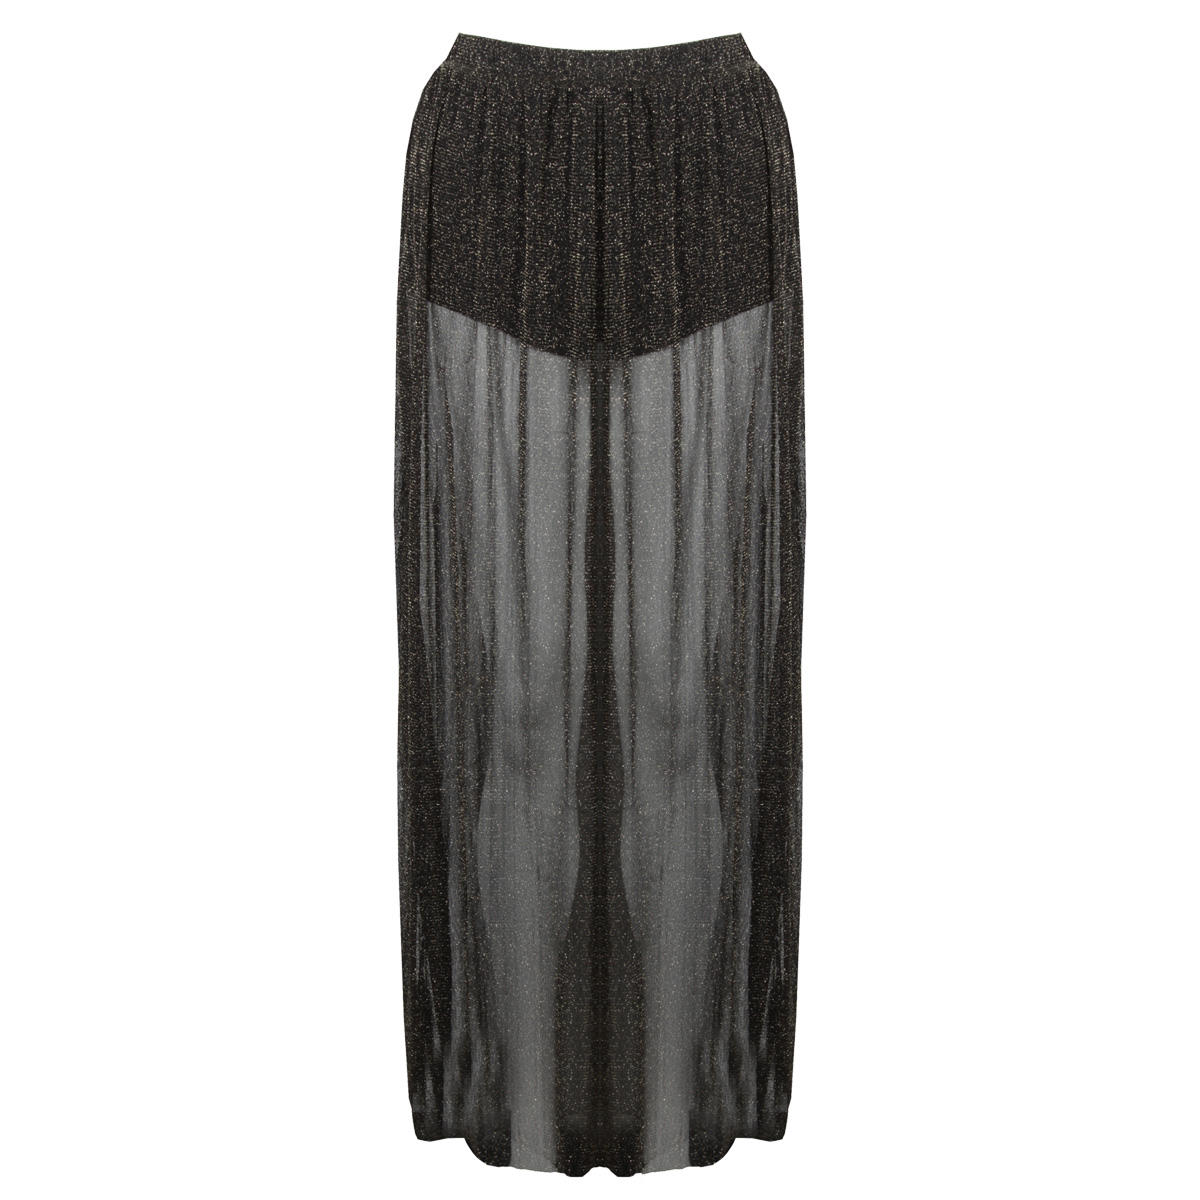 Item Details - Sheer Black and Gold Maxi Skirt